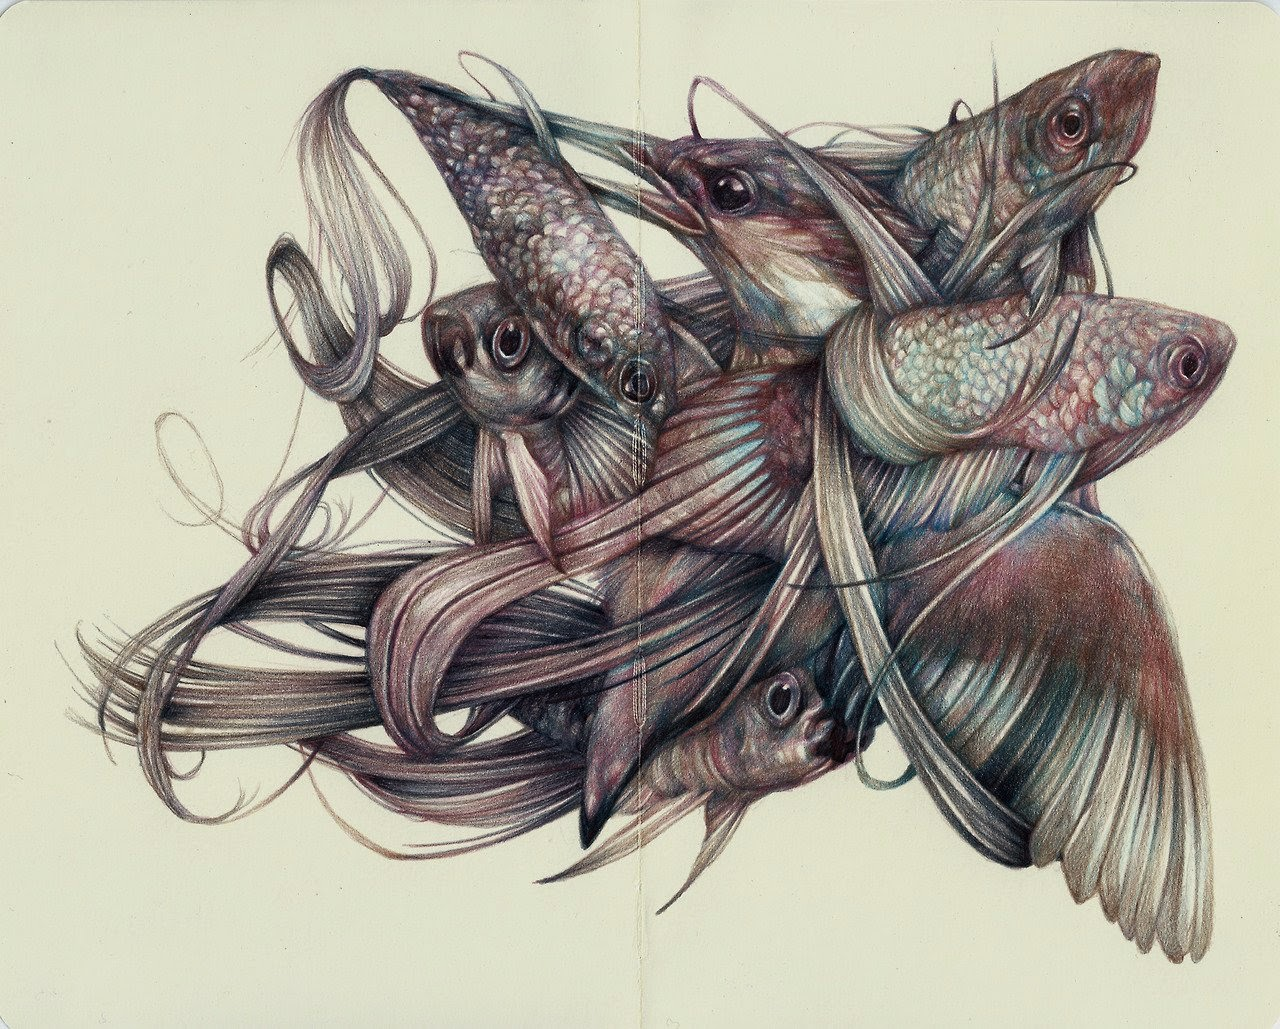 17-Marco-Mazzoni-Surreal-Animal-Drawings-www-designstack-co